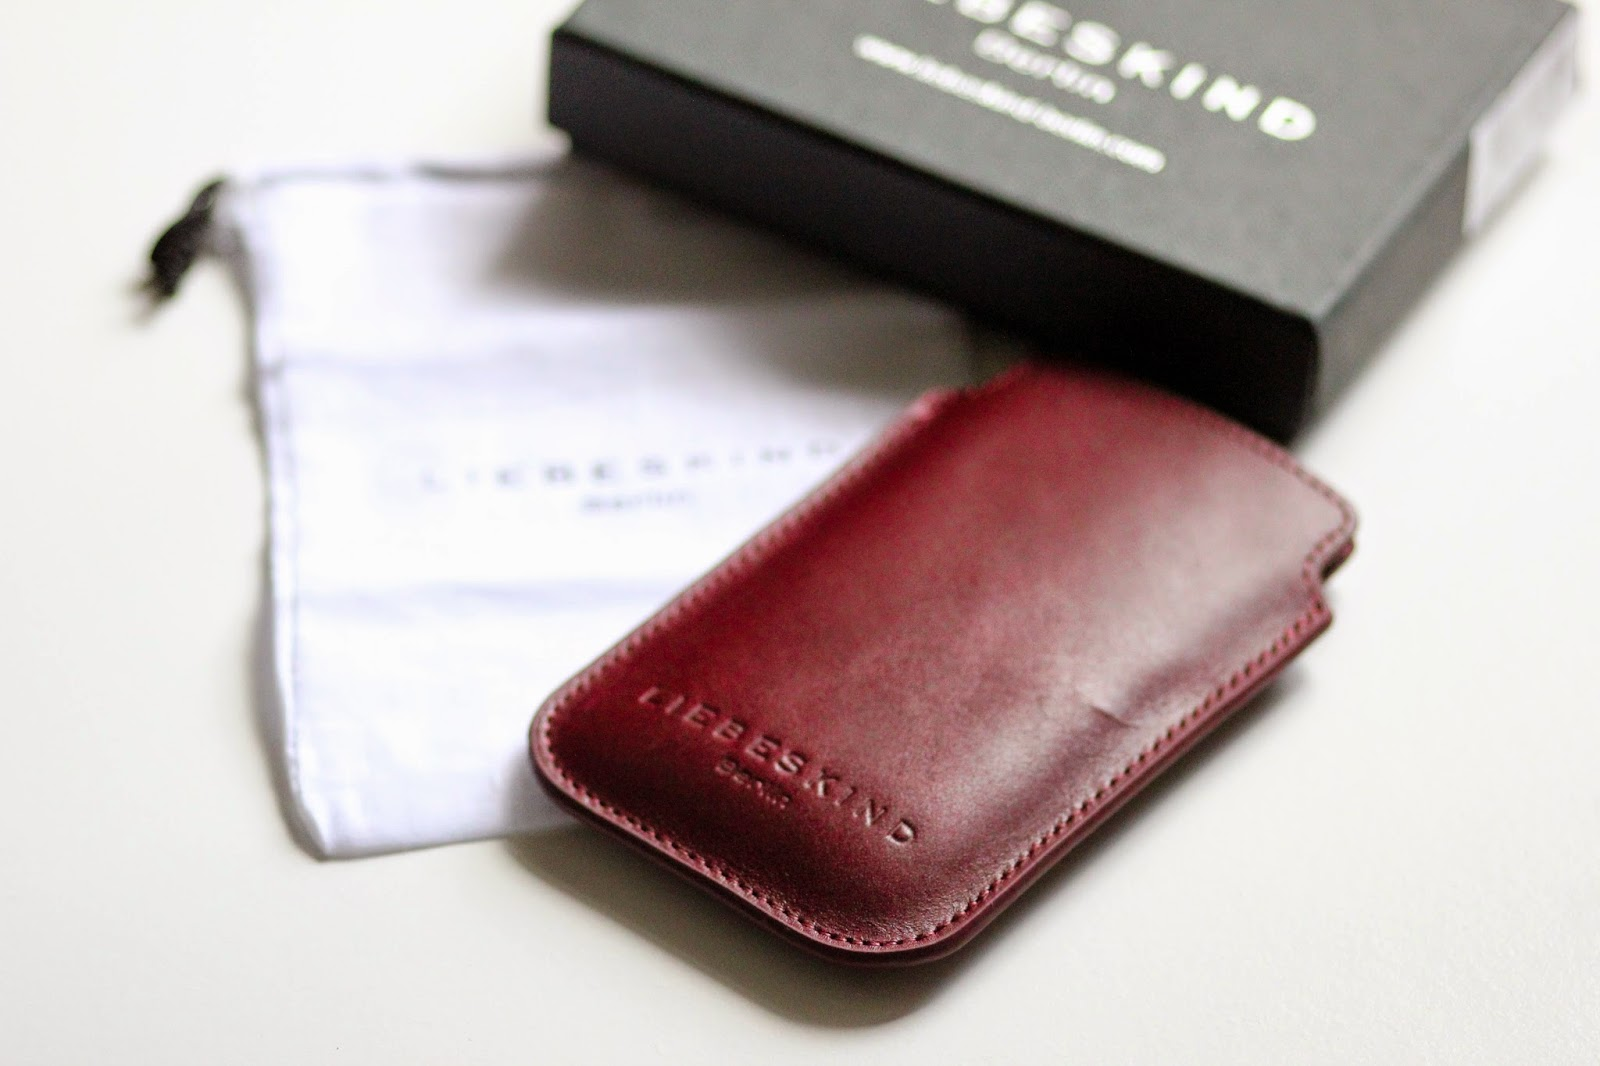 ACCESSOIRE: MOBILE CASE BY LIEBESKIND BERLIN PRIZMAHFASHION